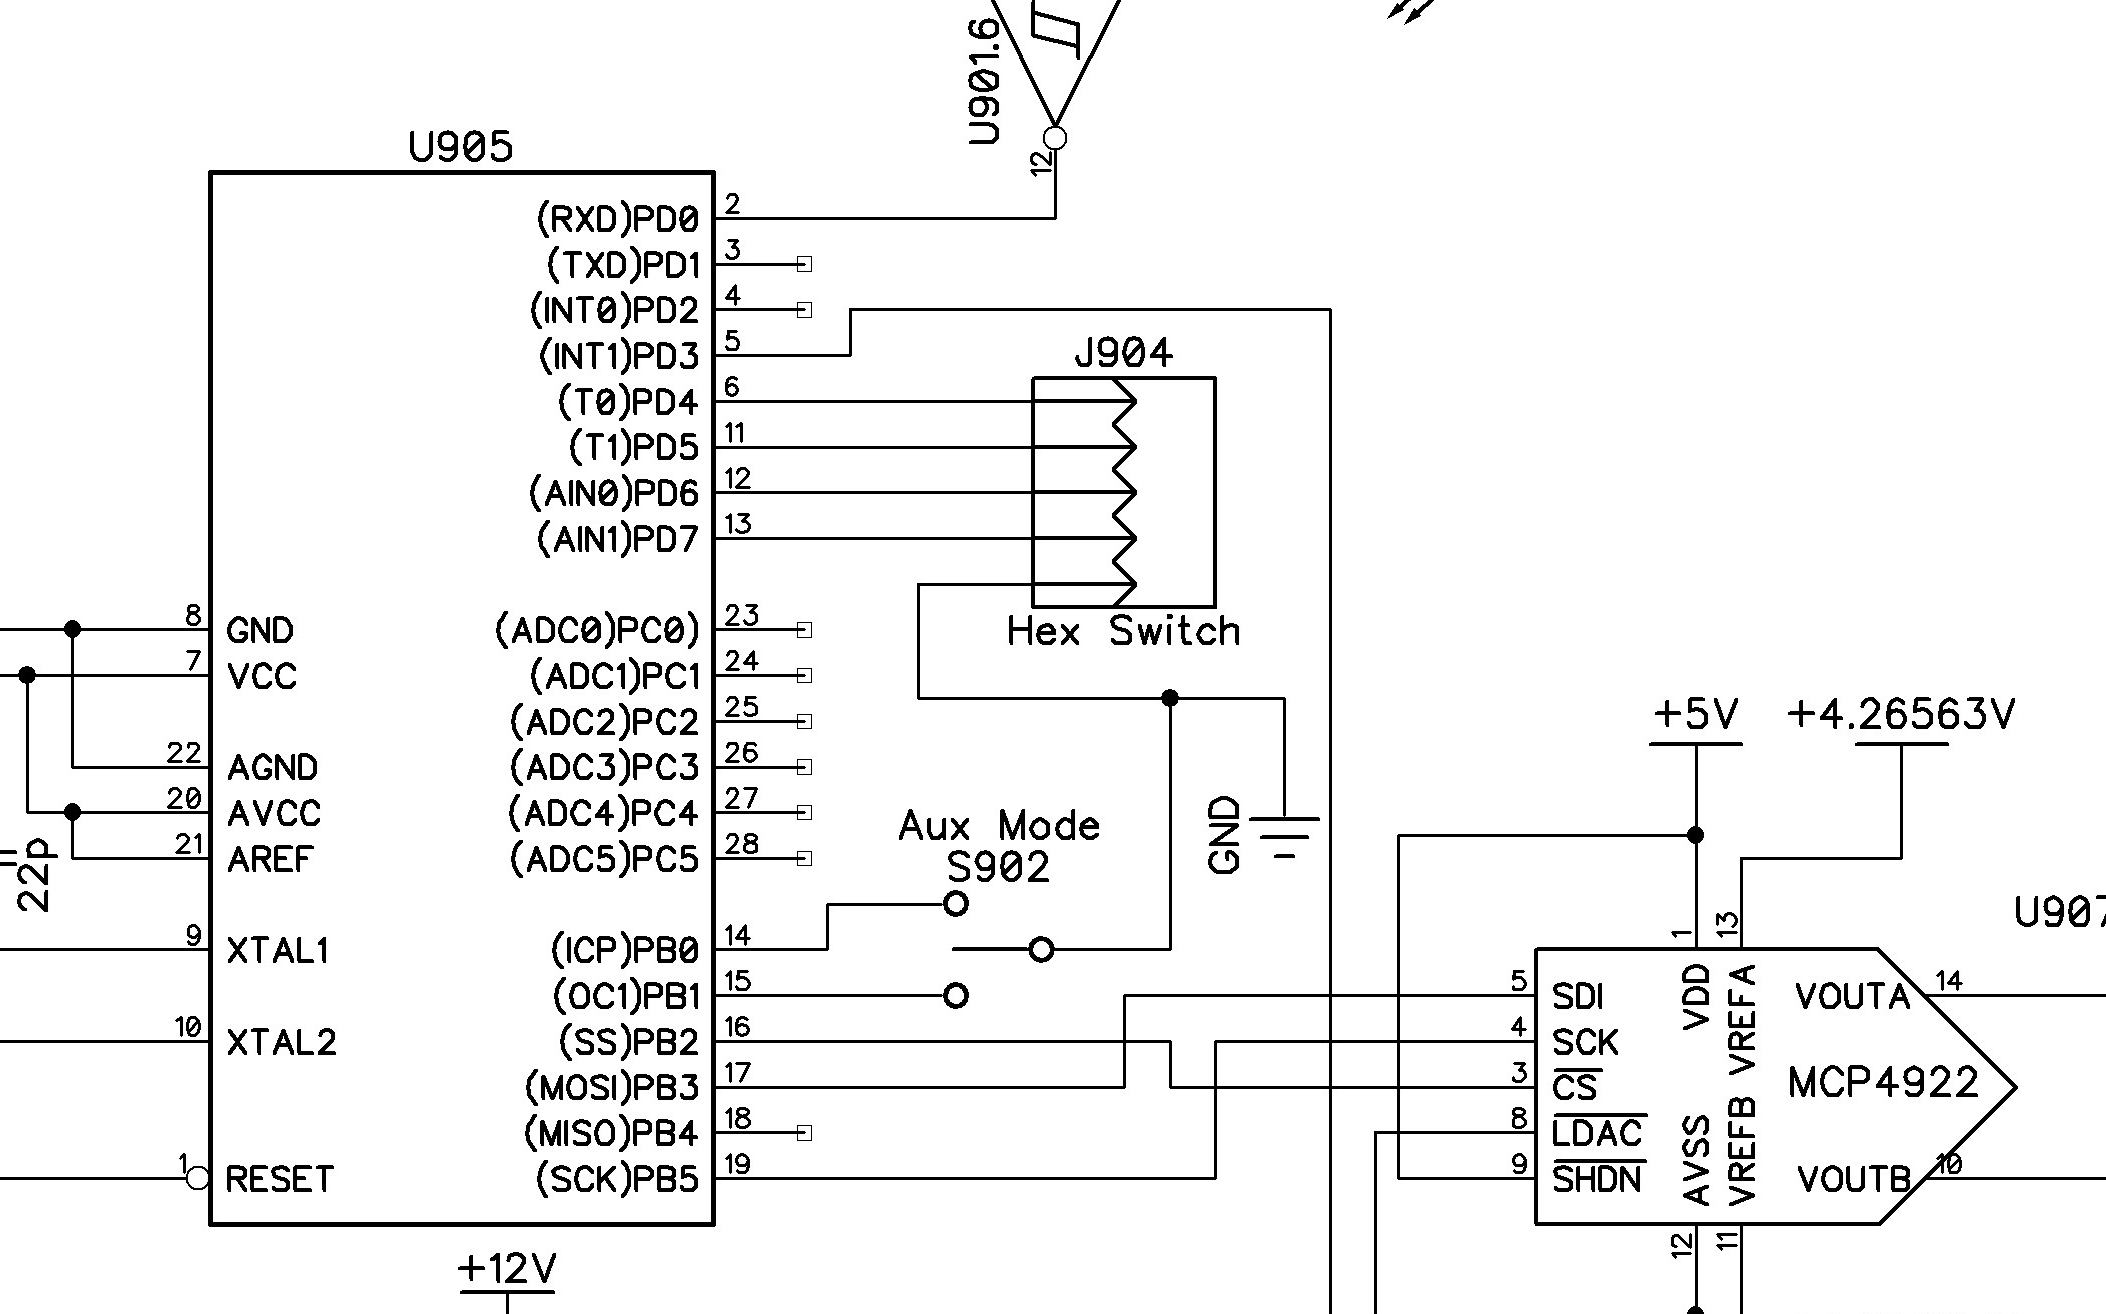 pulse power amplifier circuit diagram tradeoficcom wiring diagram go dcstabilized inverting amplifier circuit diagram tradeoficcom dcstabilized [ 2106 x 1314 Pixel ]